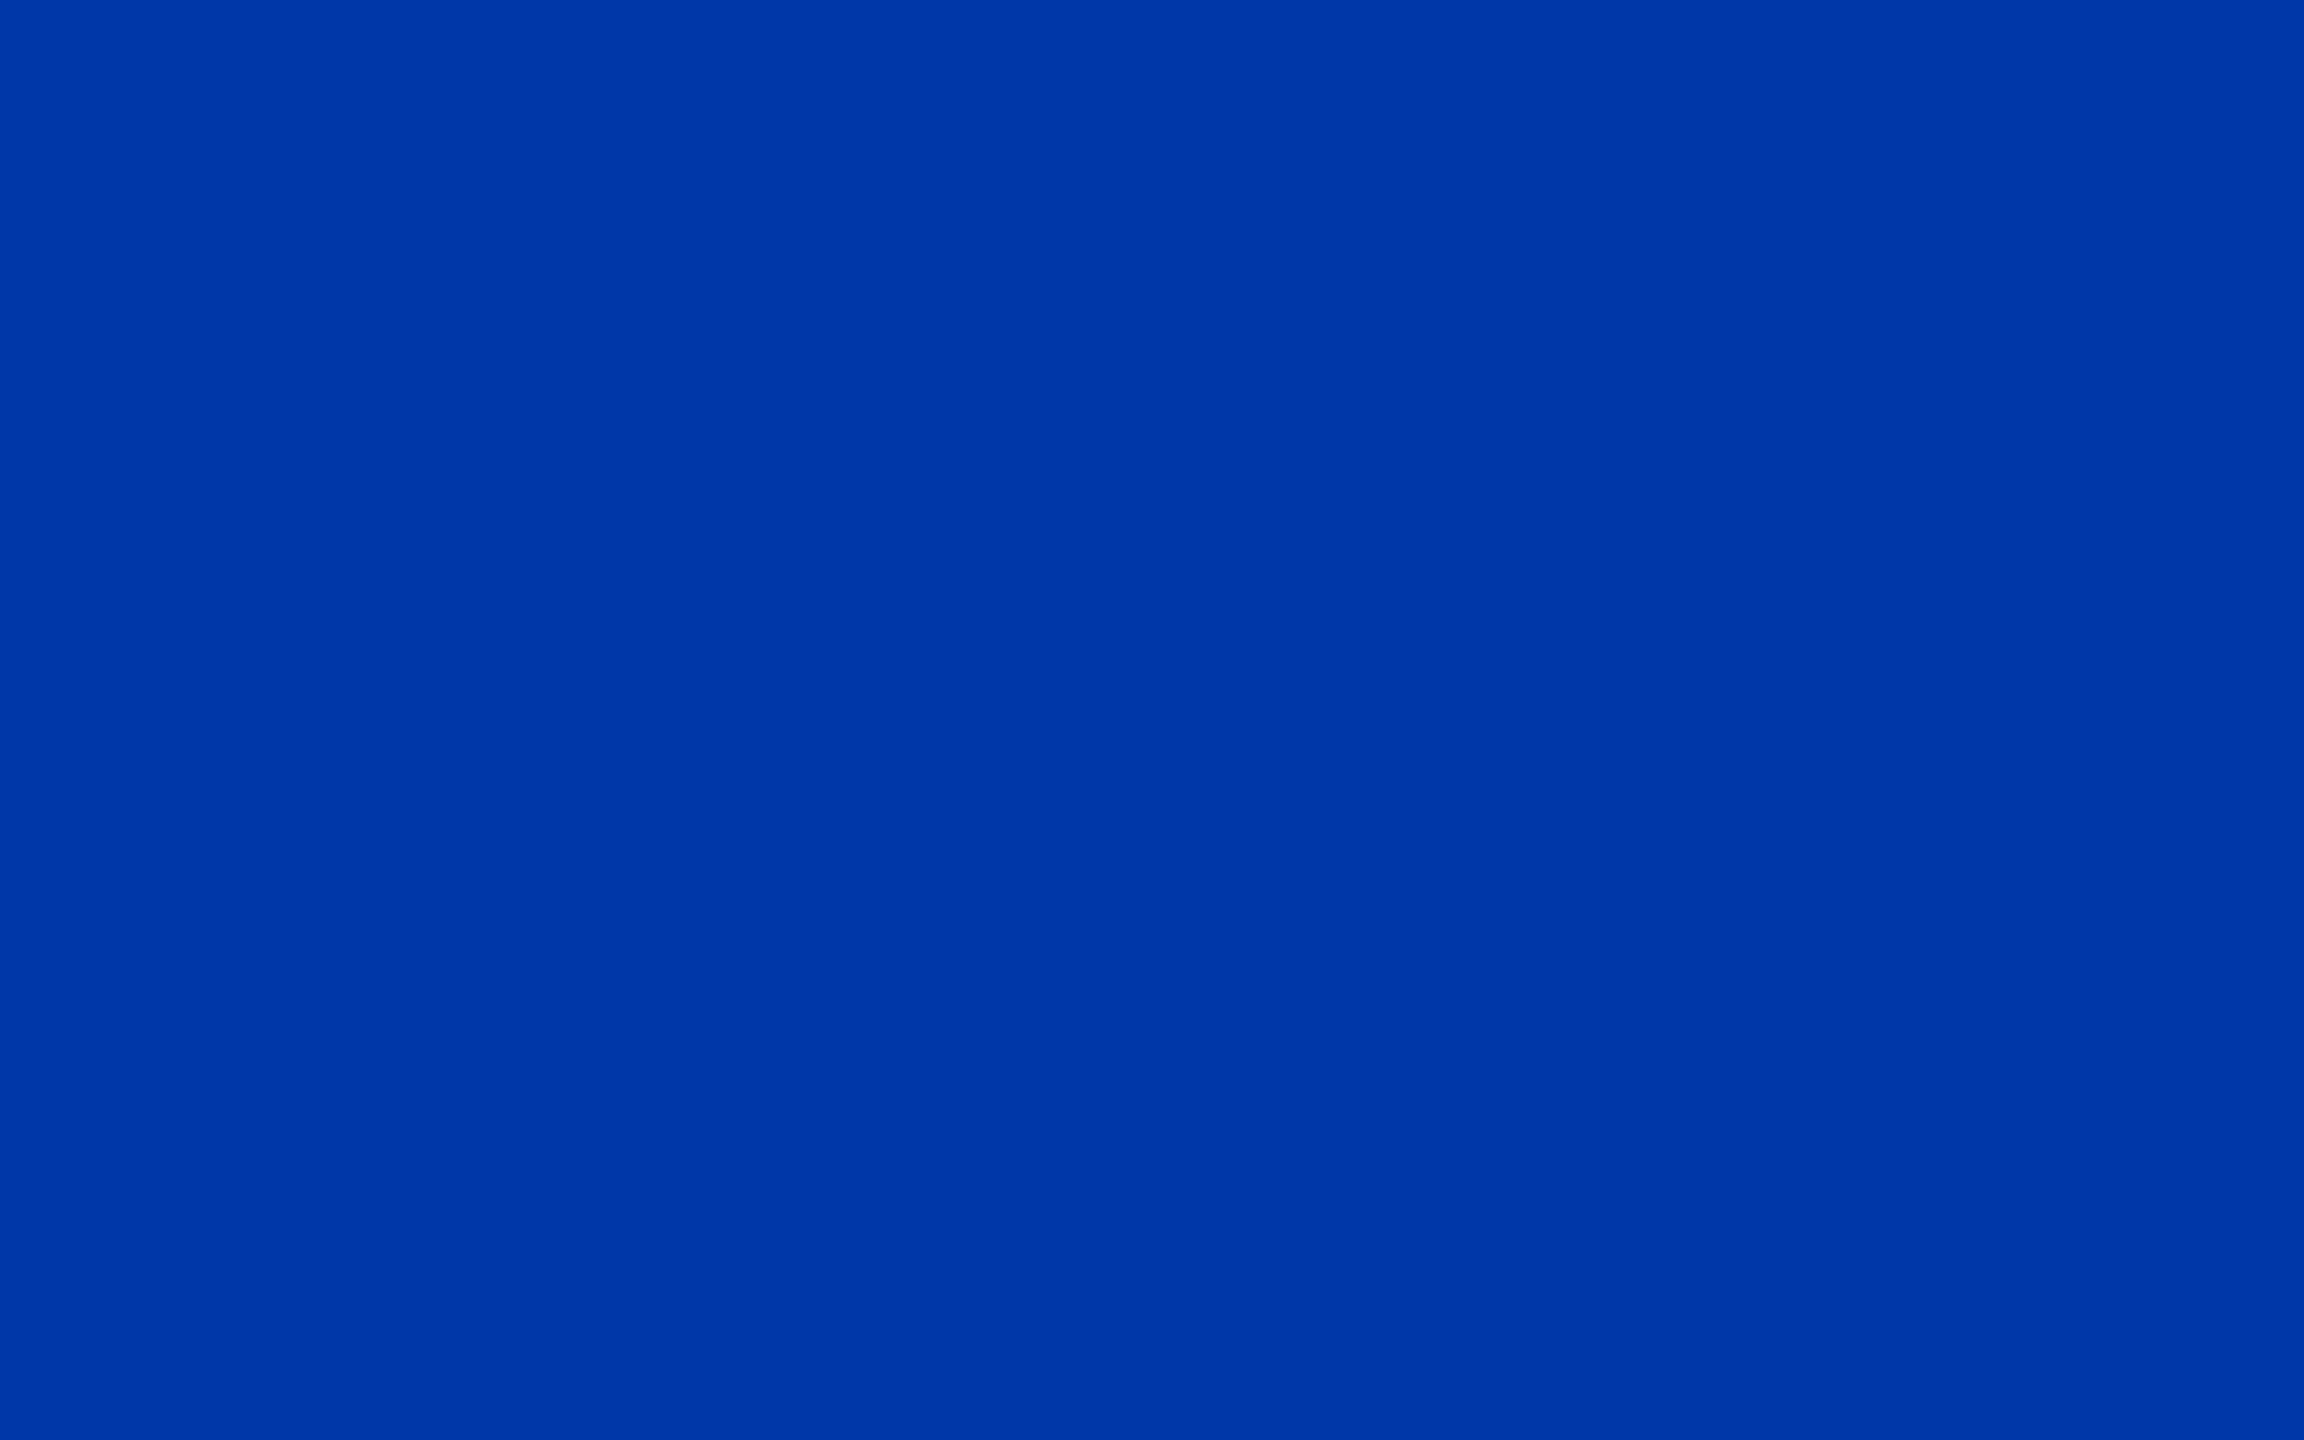 2304x1440 Royal Azure Solid Color Background